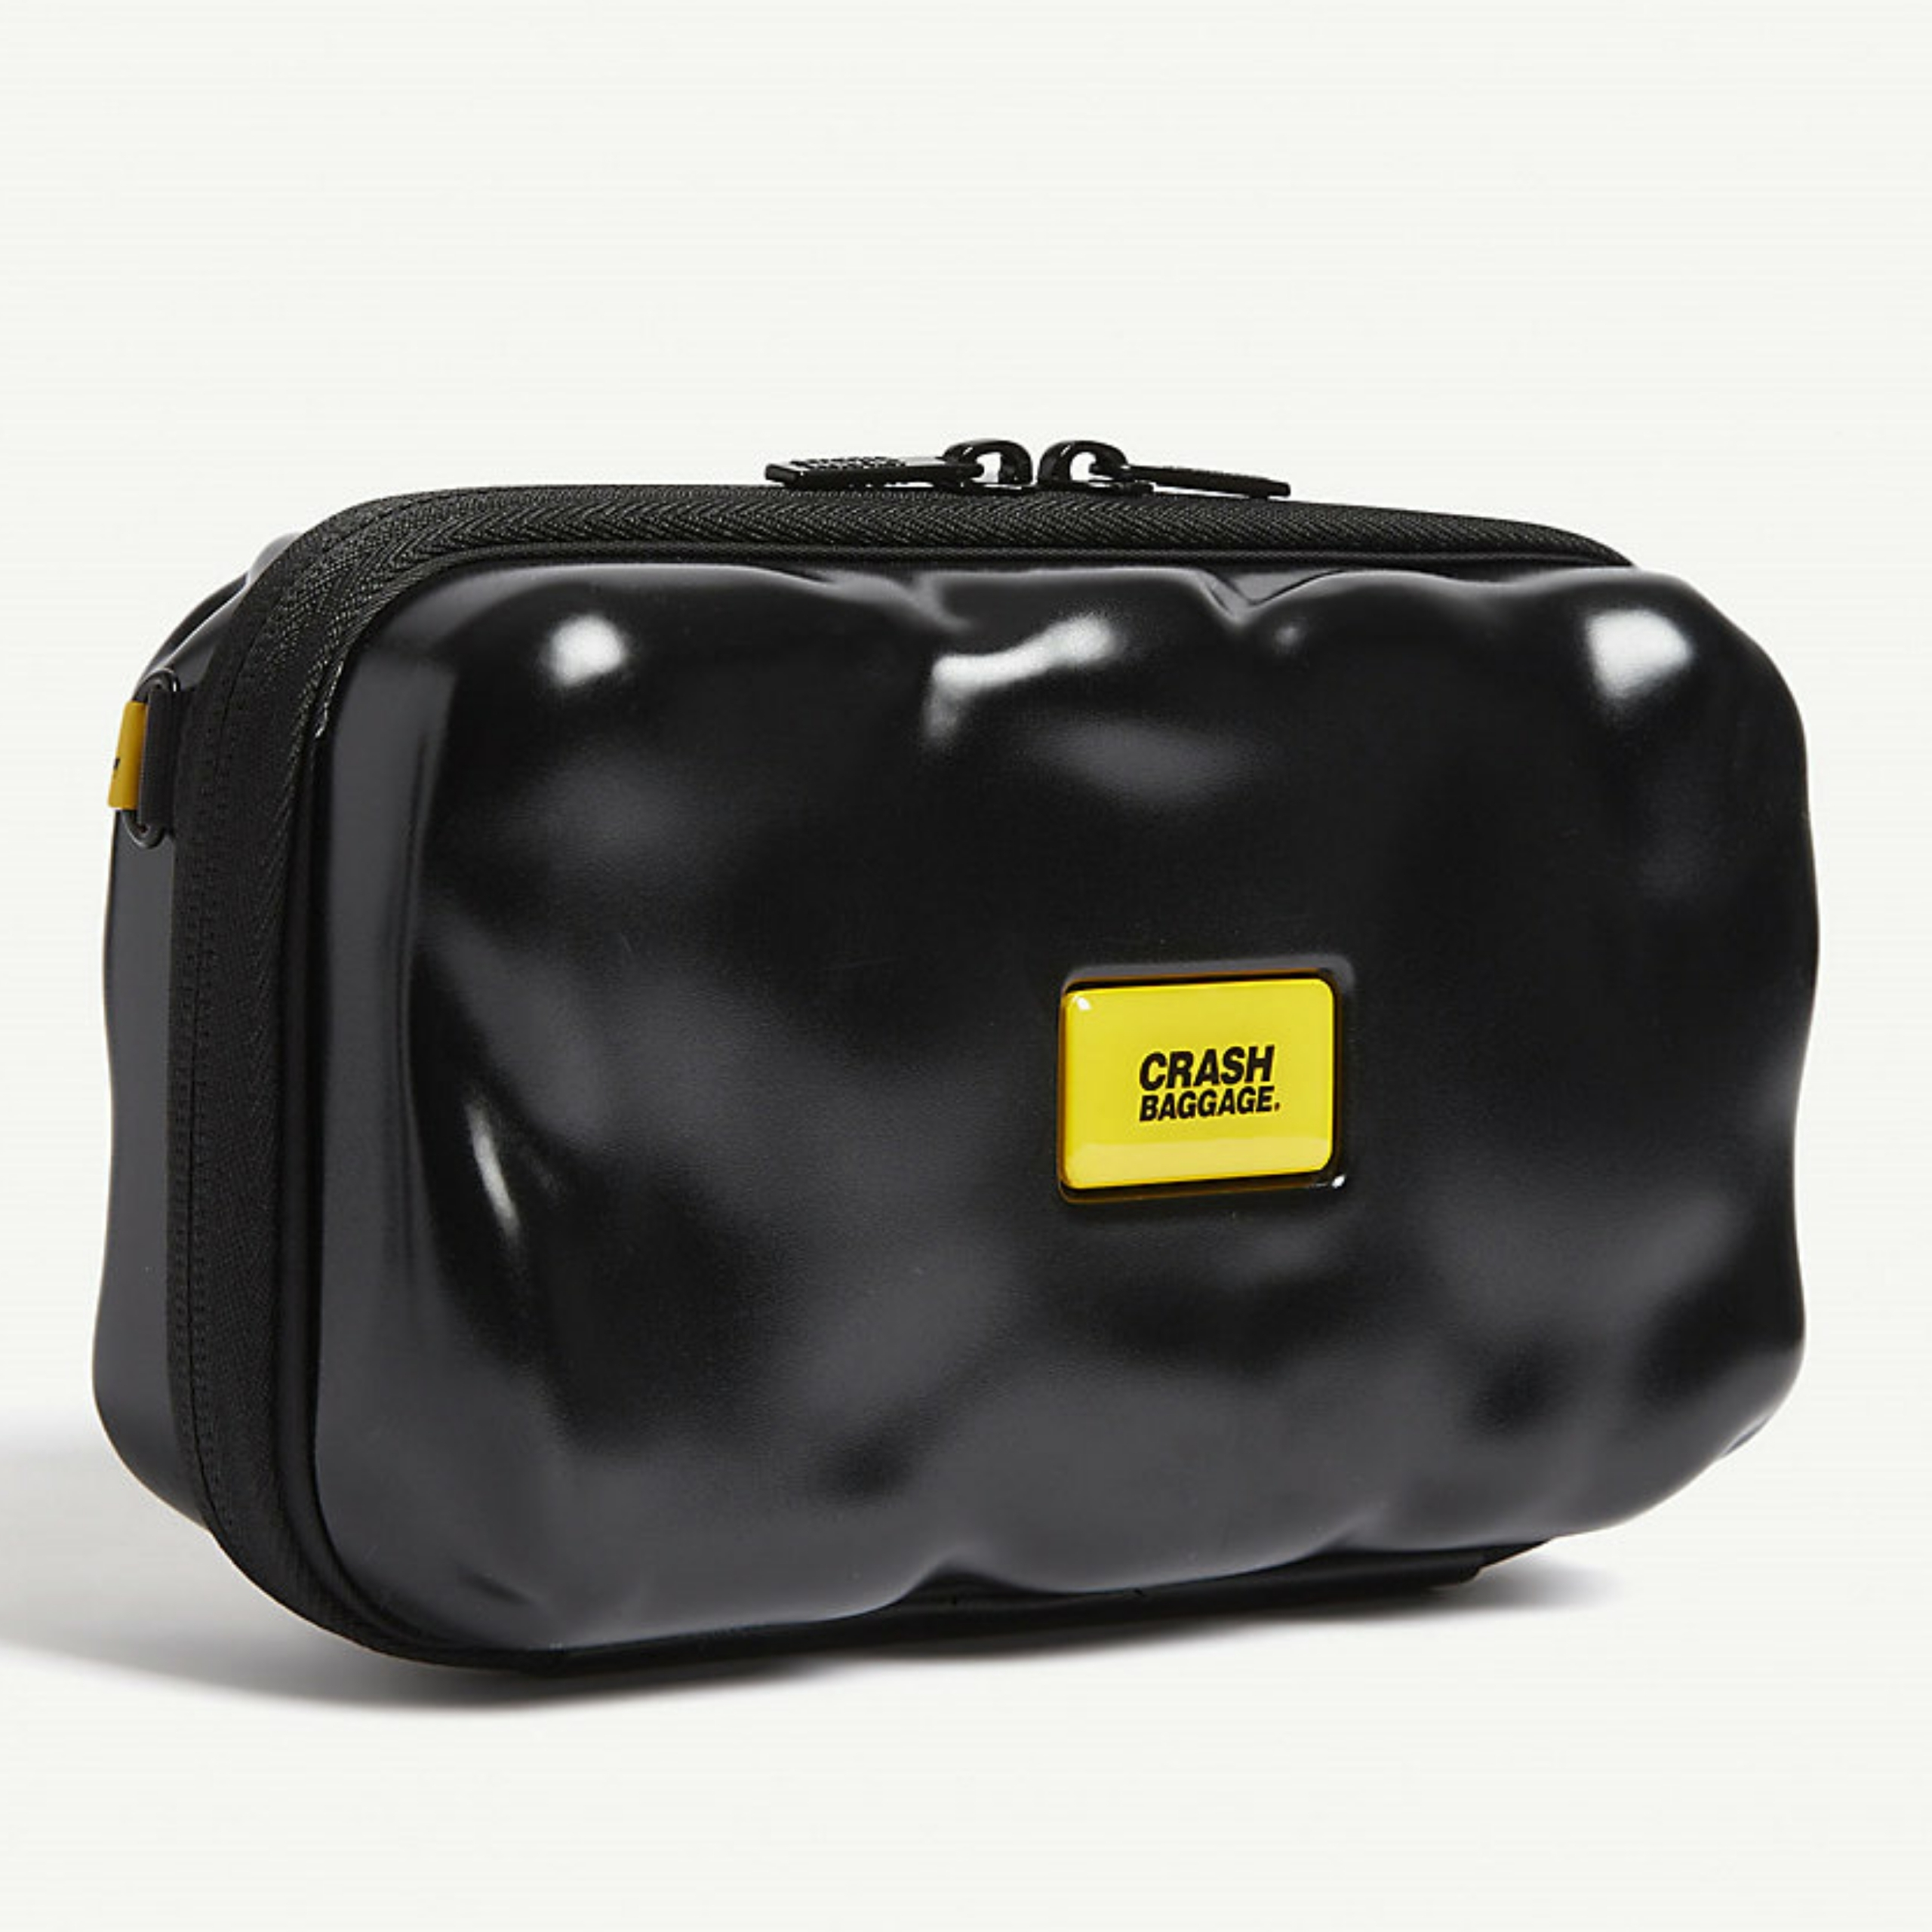 shop crash baggage bags